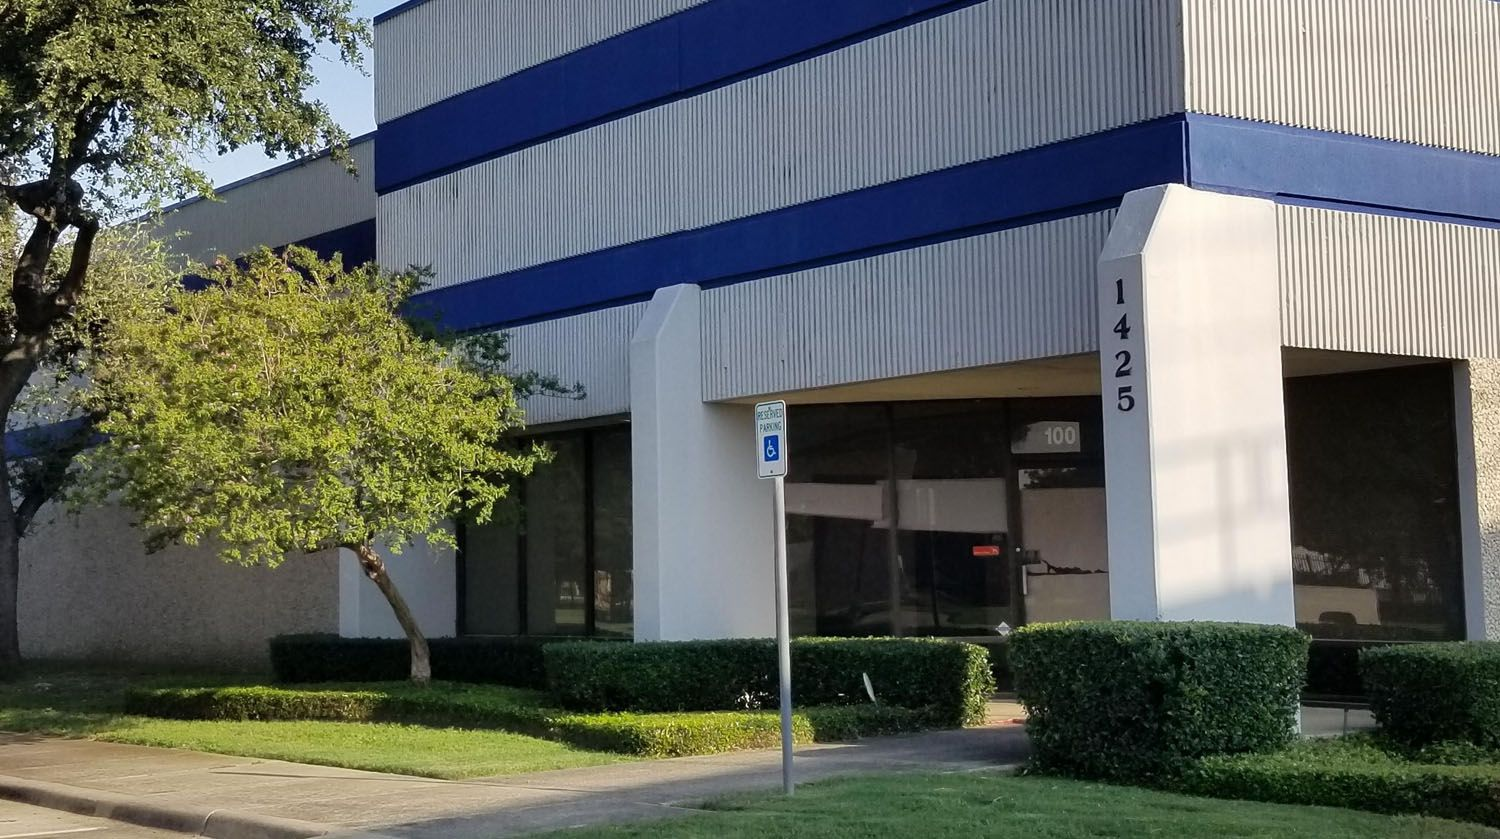 Technical Consumer Products Inc. leased 11,819 square feet of office and warehouse space in Whitlock Business Center I in Carrollton.